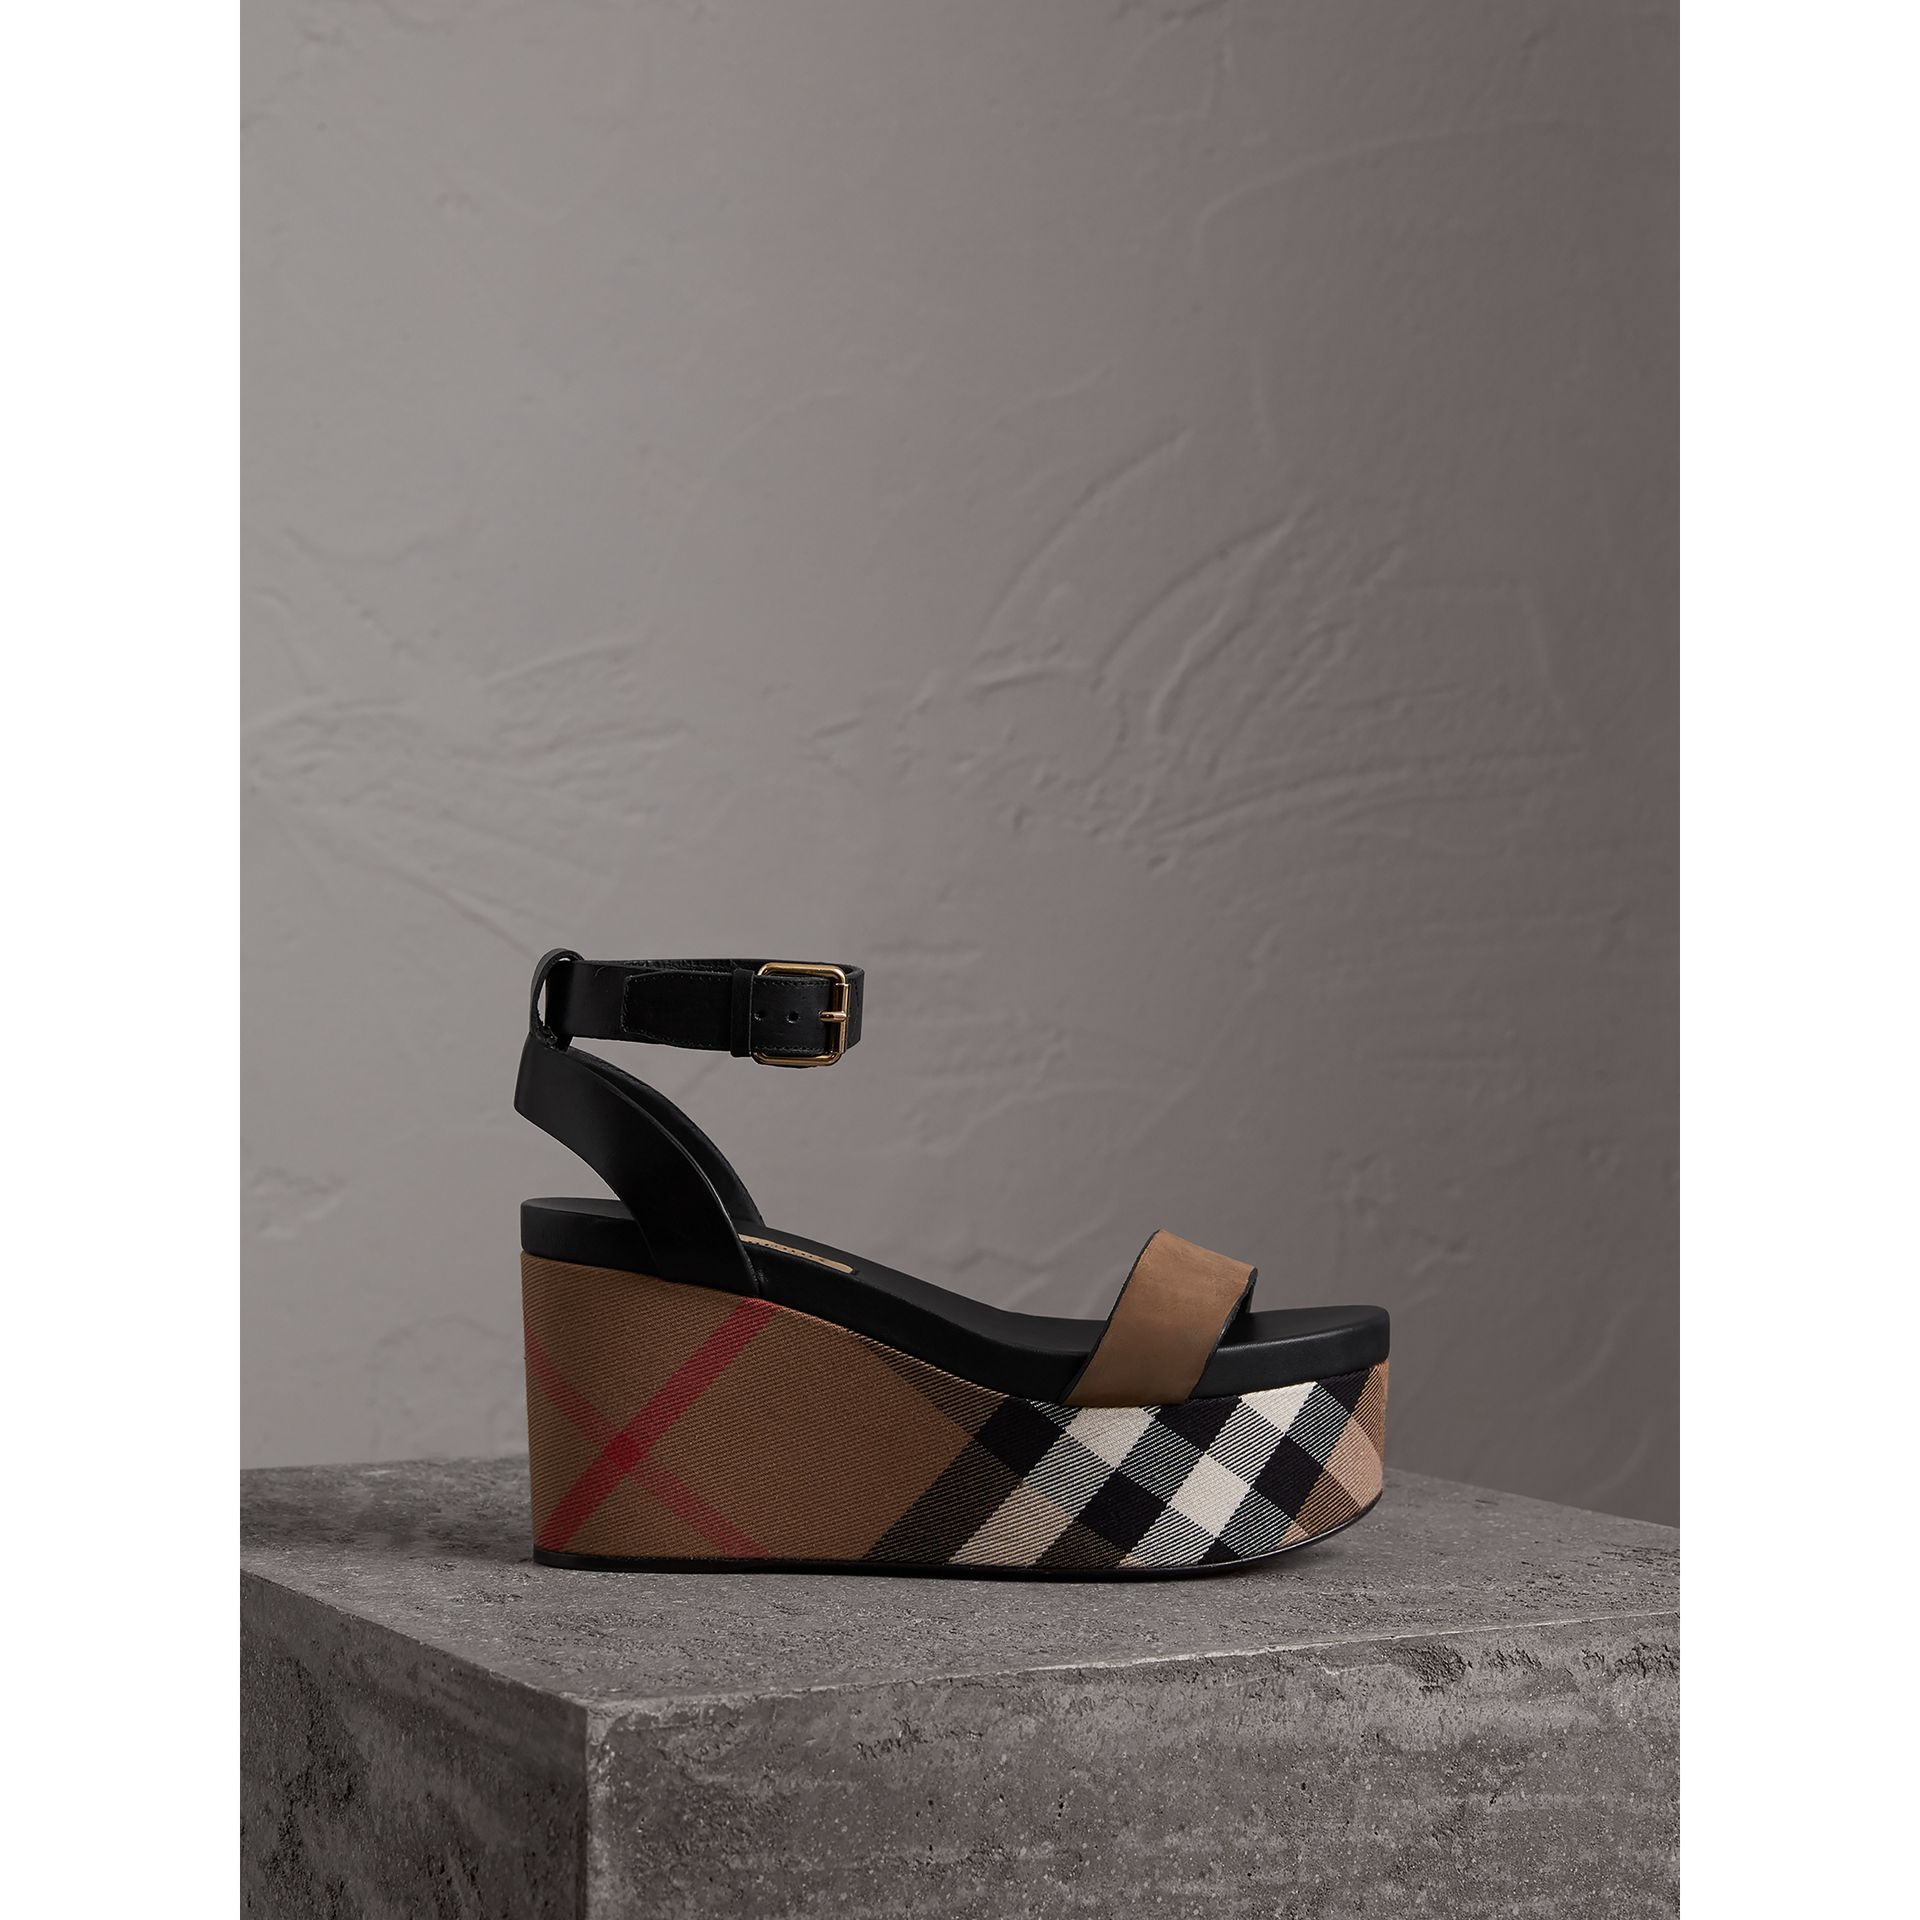 House Check and Leather Wedge Sandals in Dark Heather Melange - Women | Burberry United States - gallery image 1